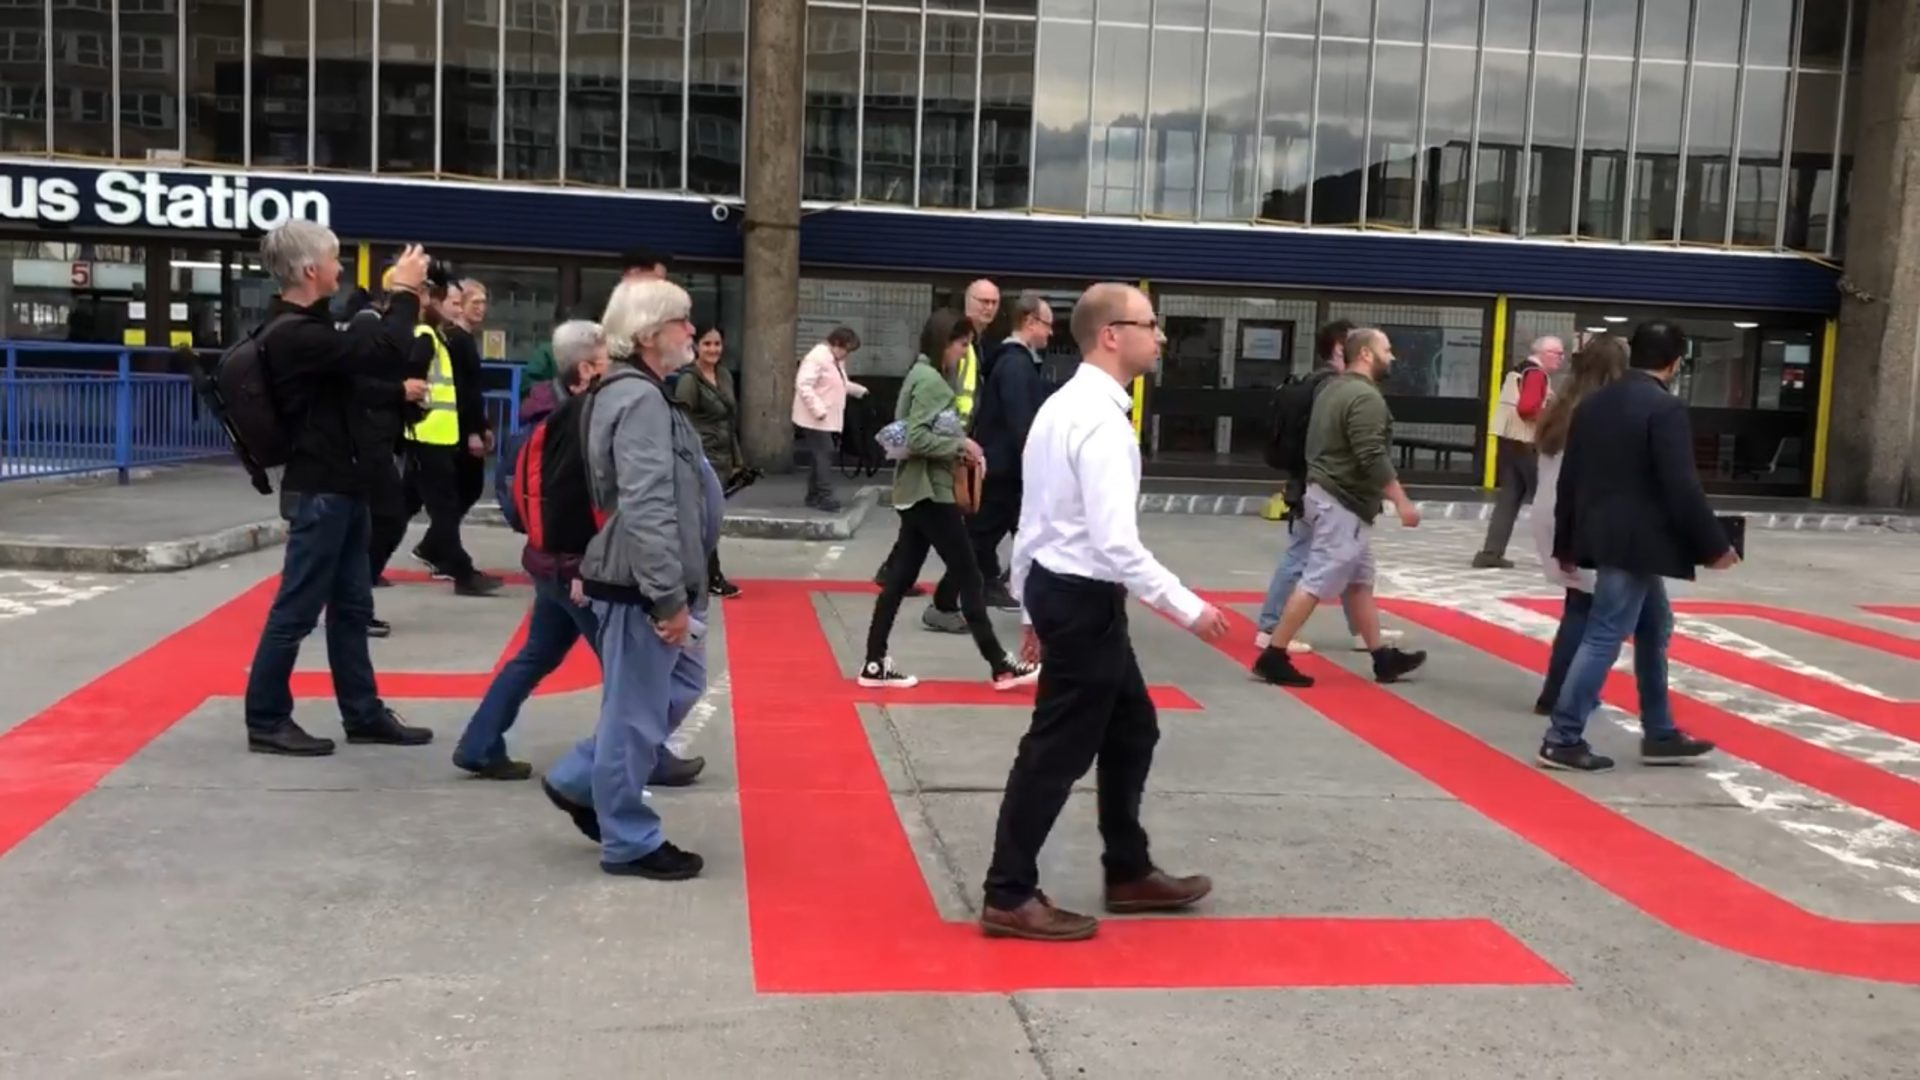 Image shows people walking over a large red sign that says 'People' painted on Preston bus station ground.